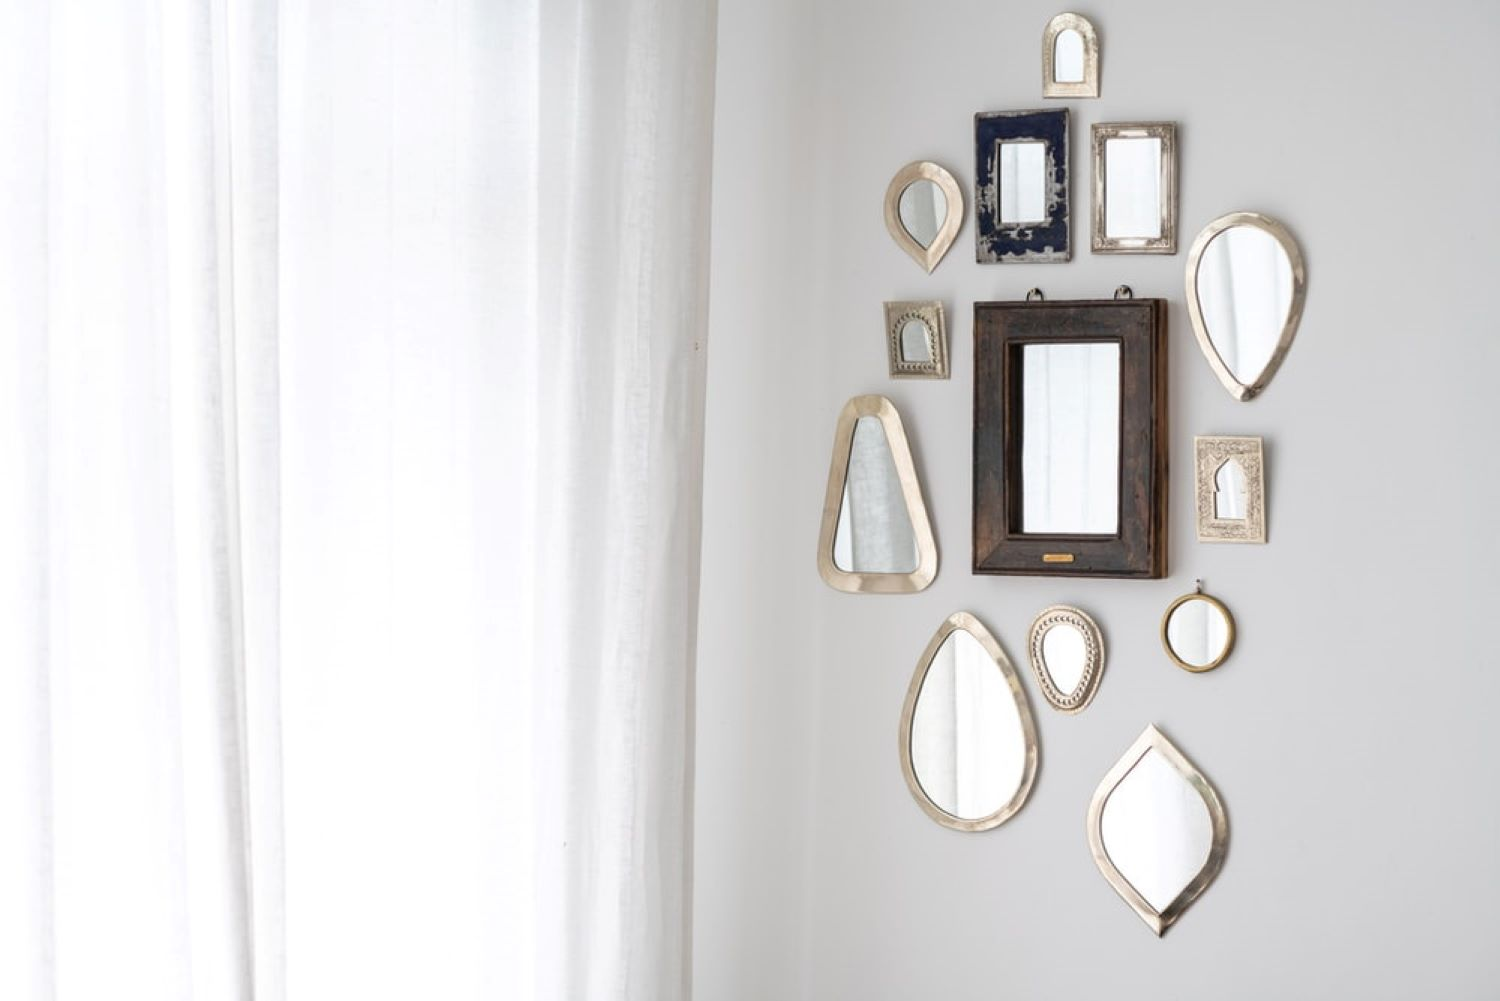 14 Wonderful Wall Decor Ideas at Home